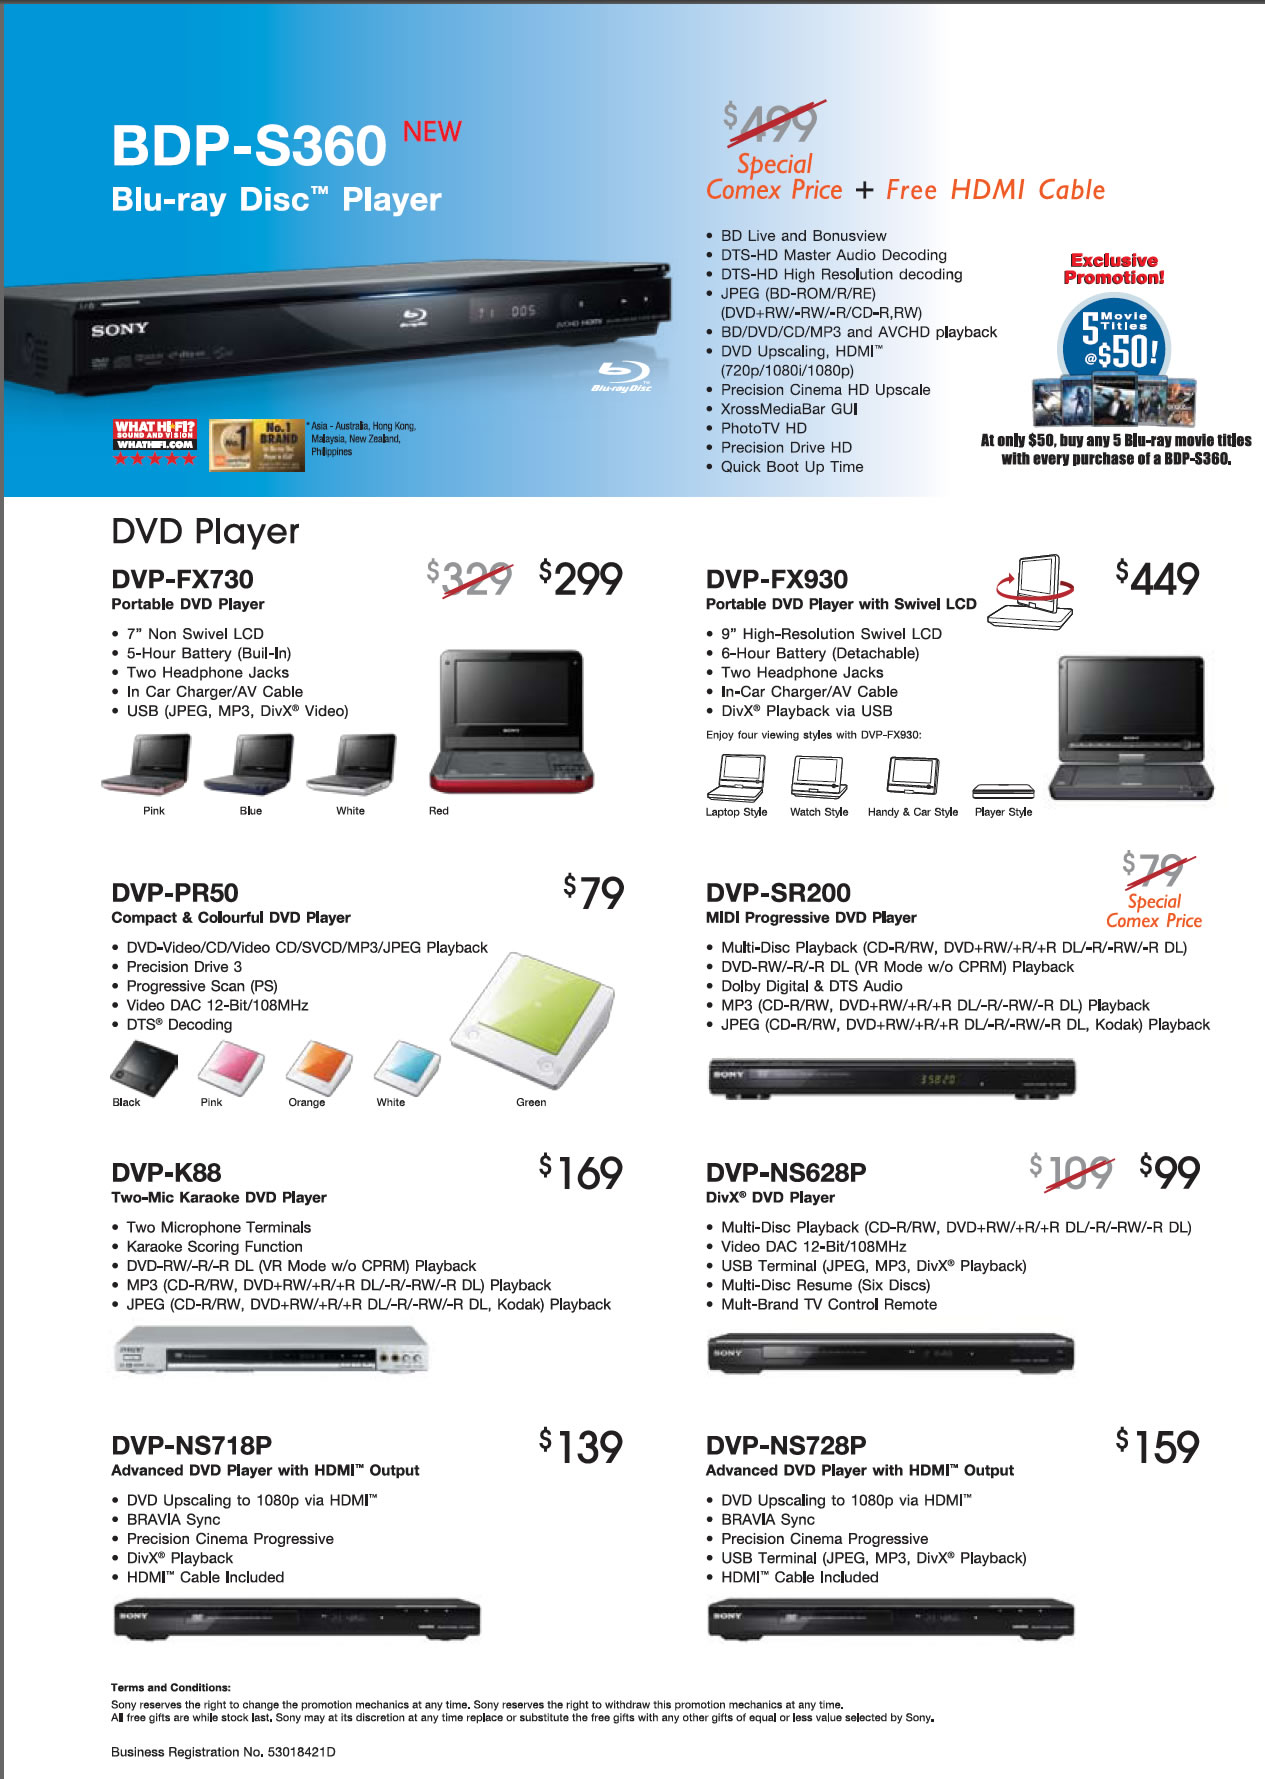 Comex 2009 price list image brochure of Sony Blu-Ray Disc Player BDP S360 DVD DVP FX730 FX930 PR50 SR200 K88 NS628P